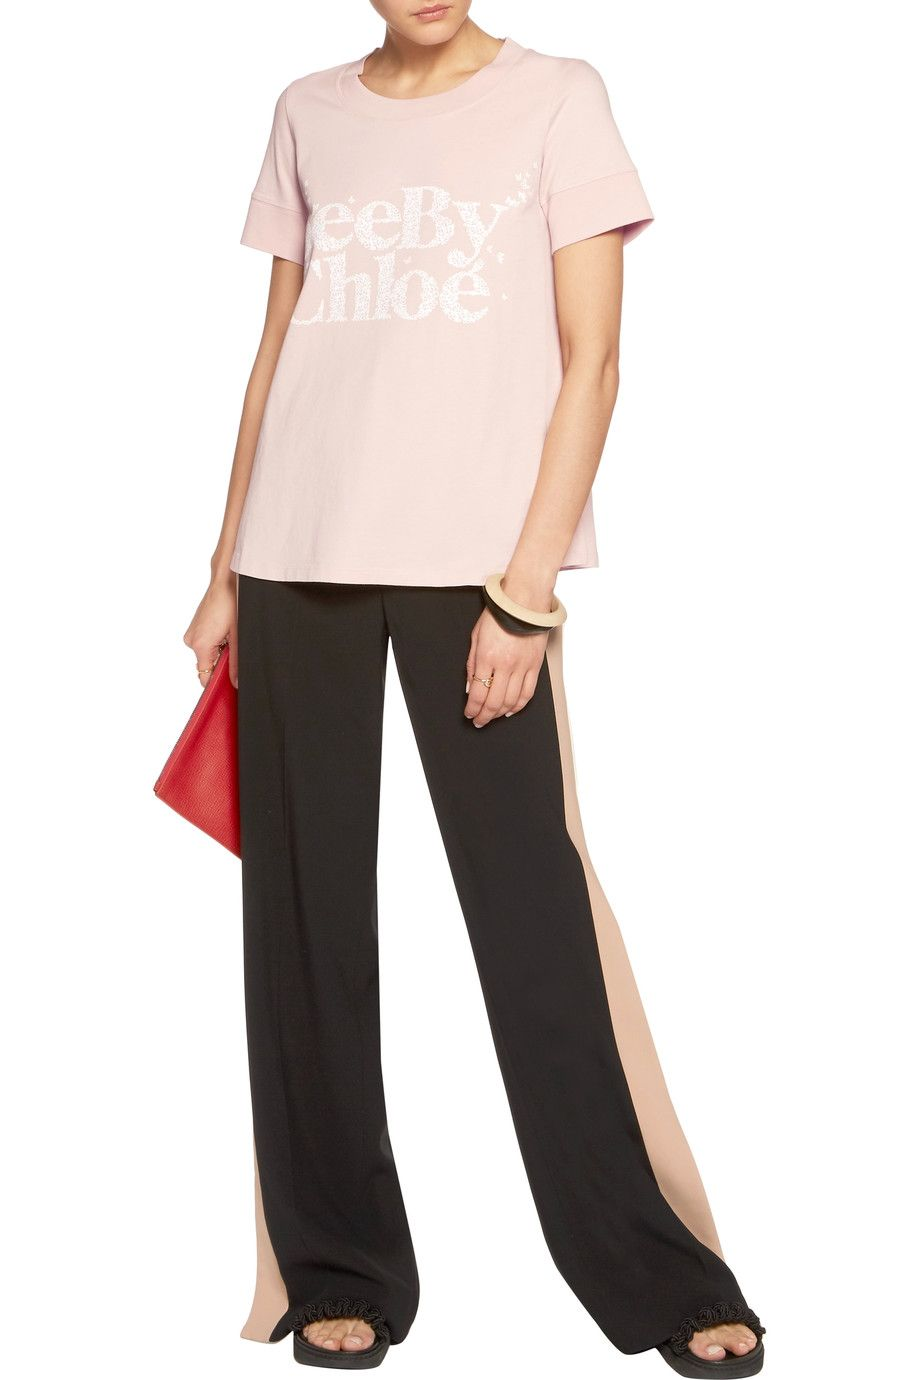 03ccc77f Shop on-sale See by Chloé Printed cotton-jersey T-shirt. Browse ...